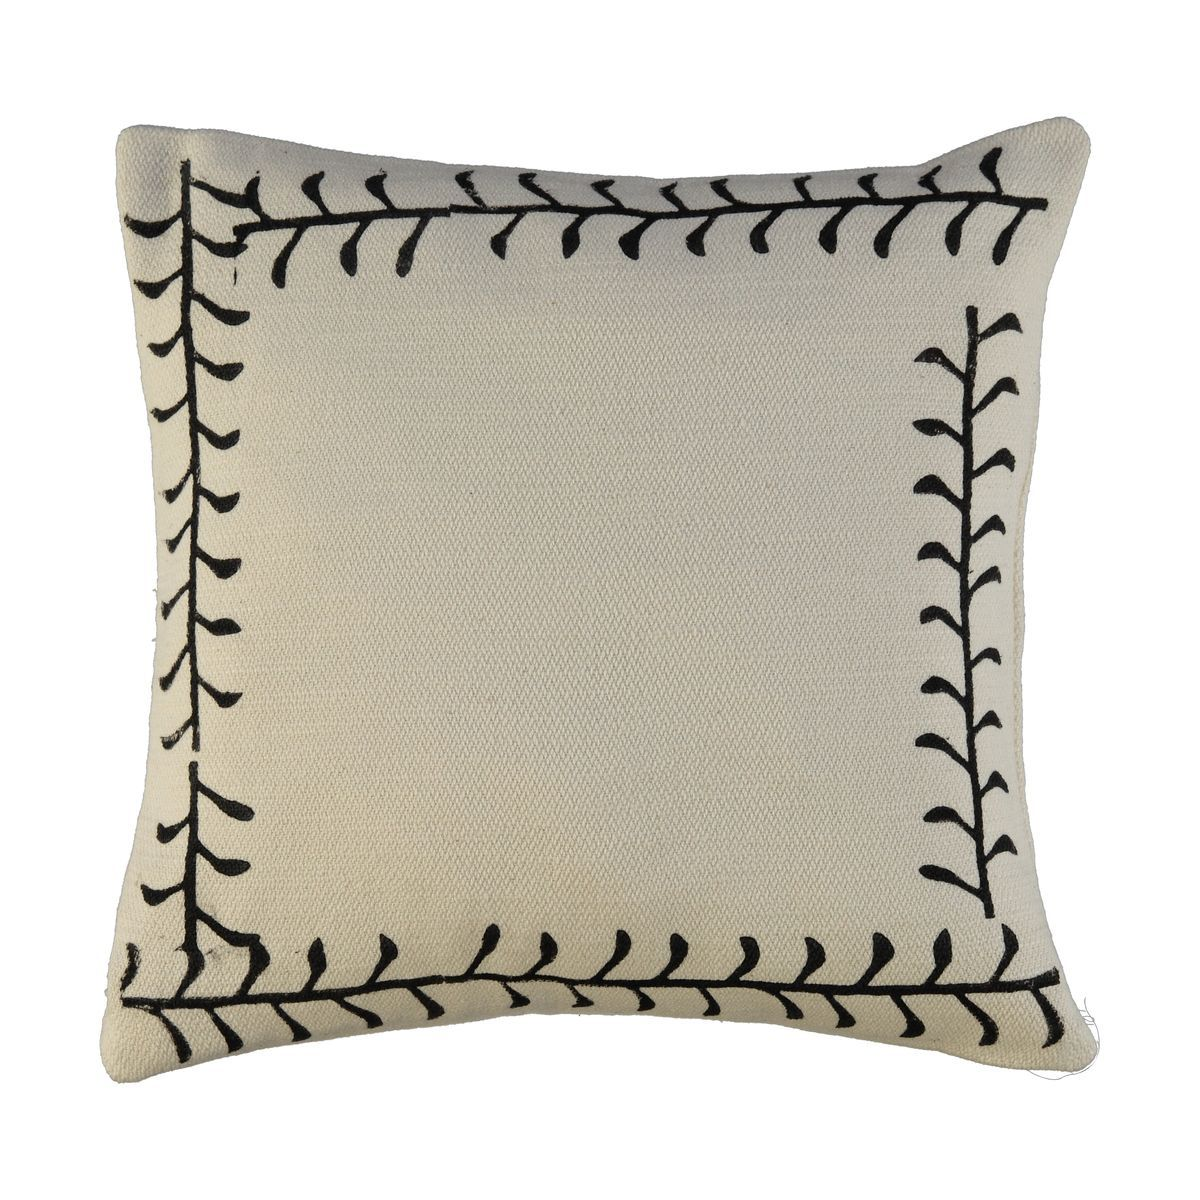 Cushion Cover / 16 Hand Printed - Black